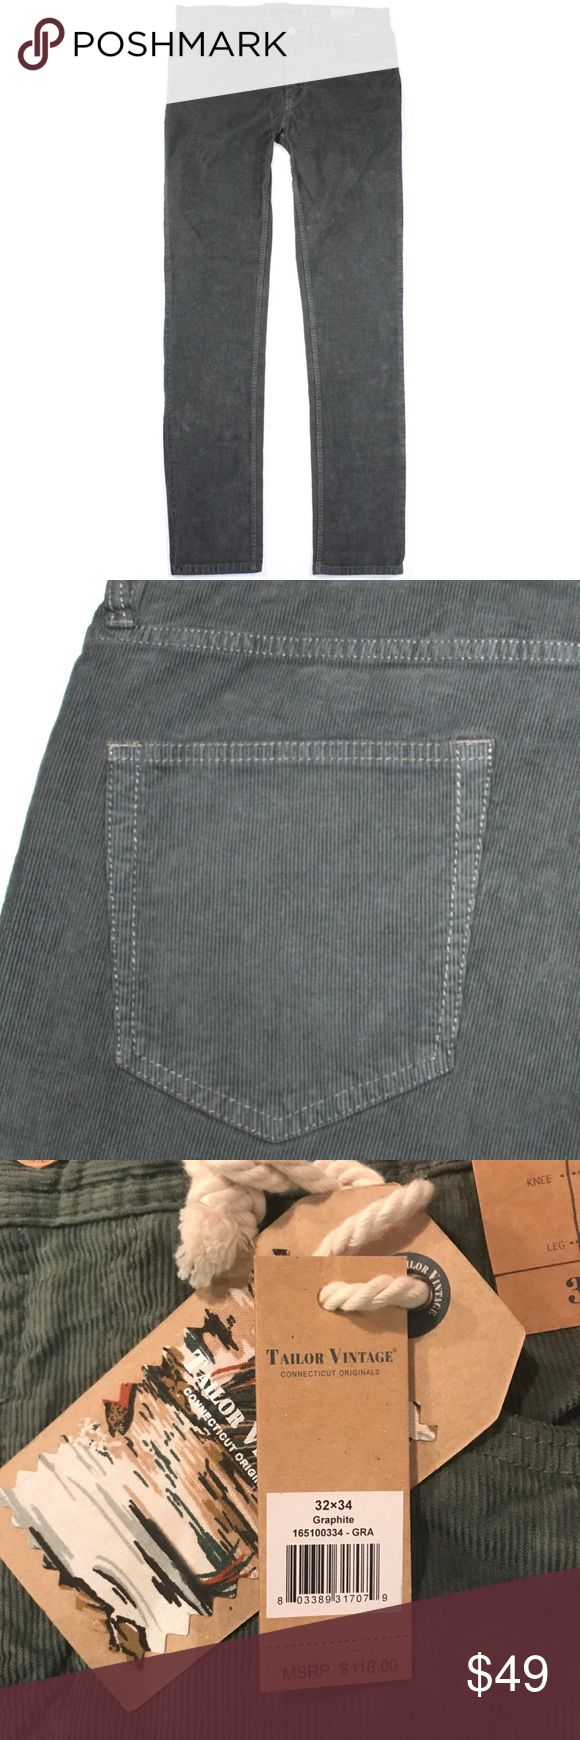 """Tailor Vintage Stretch Graphite Cords Stretch graphite cords, 5 pocket style, 98% cotton 2% spandex. Inseam 34"""" for all sizes; zippered closing, leg opening 15"""". Machine wash cold Msrp $118.00 brand new w/ tags. Tailor Vintage Pants Corduroy"""